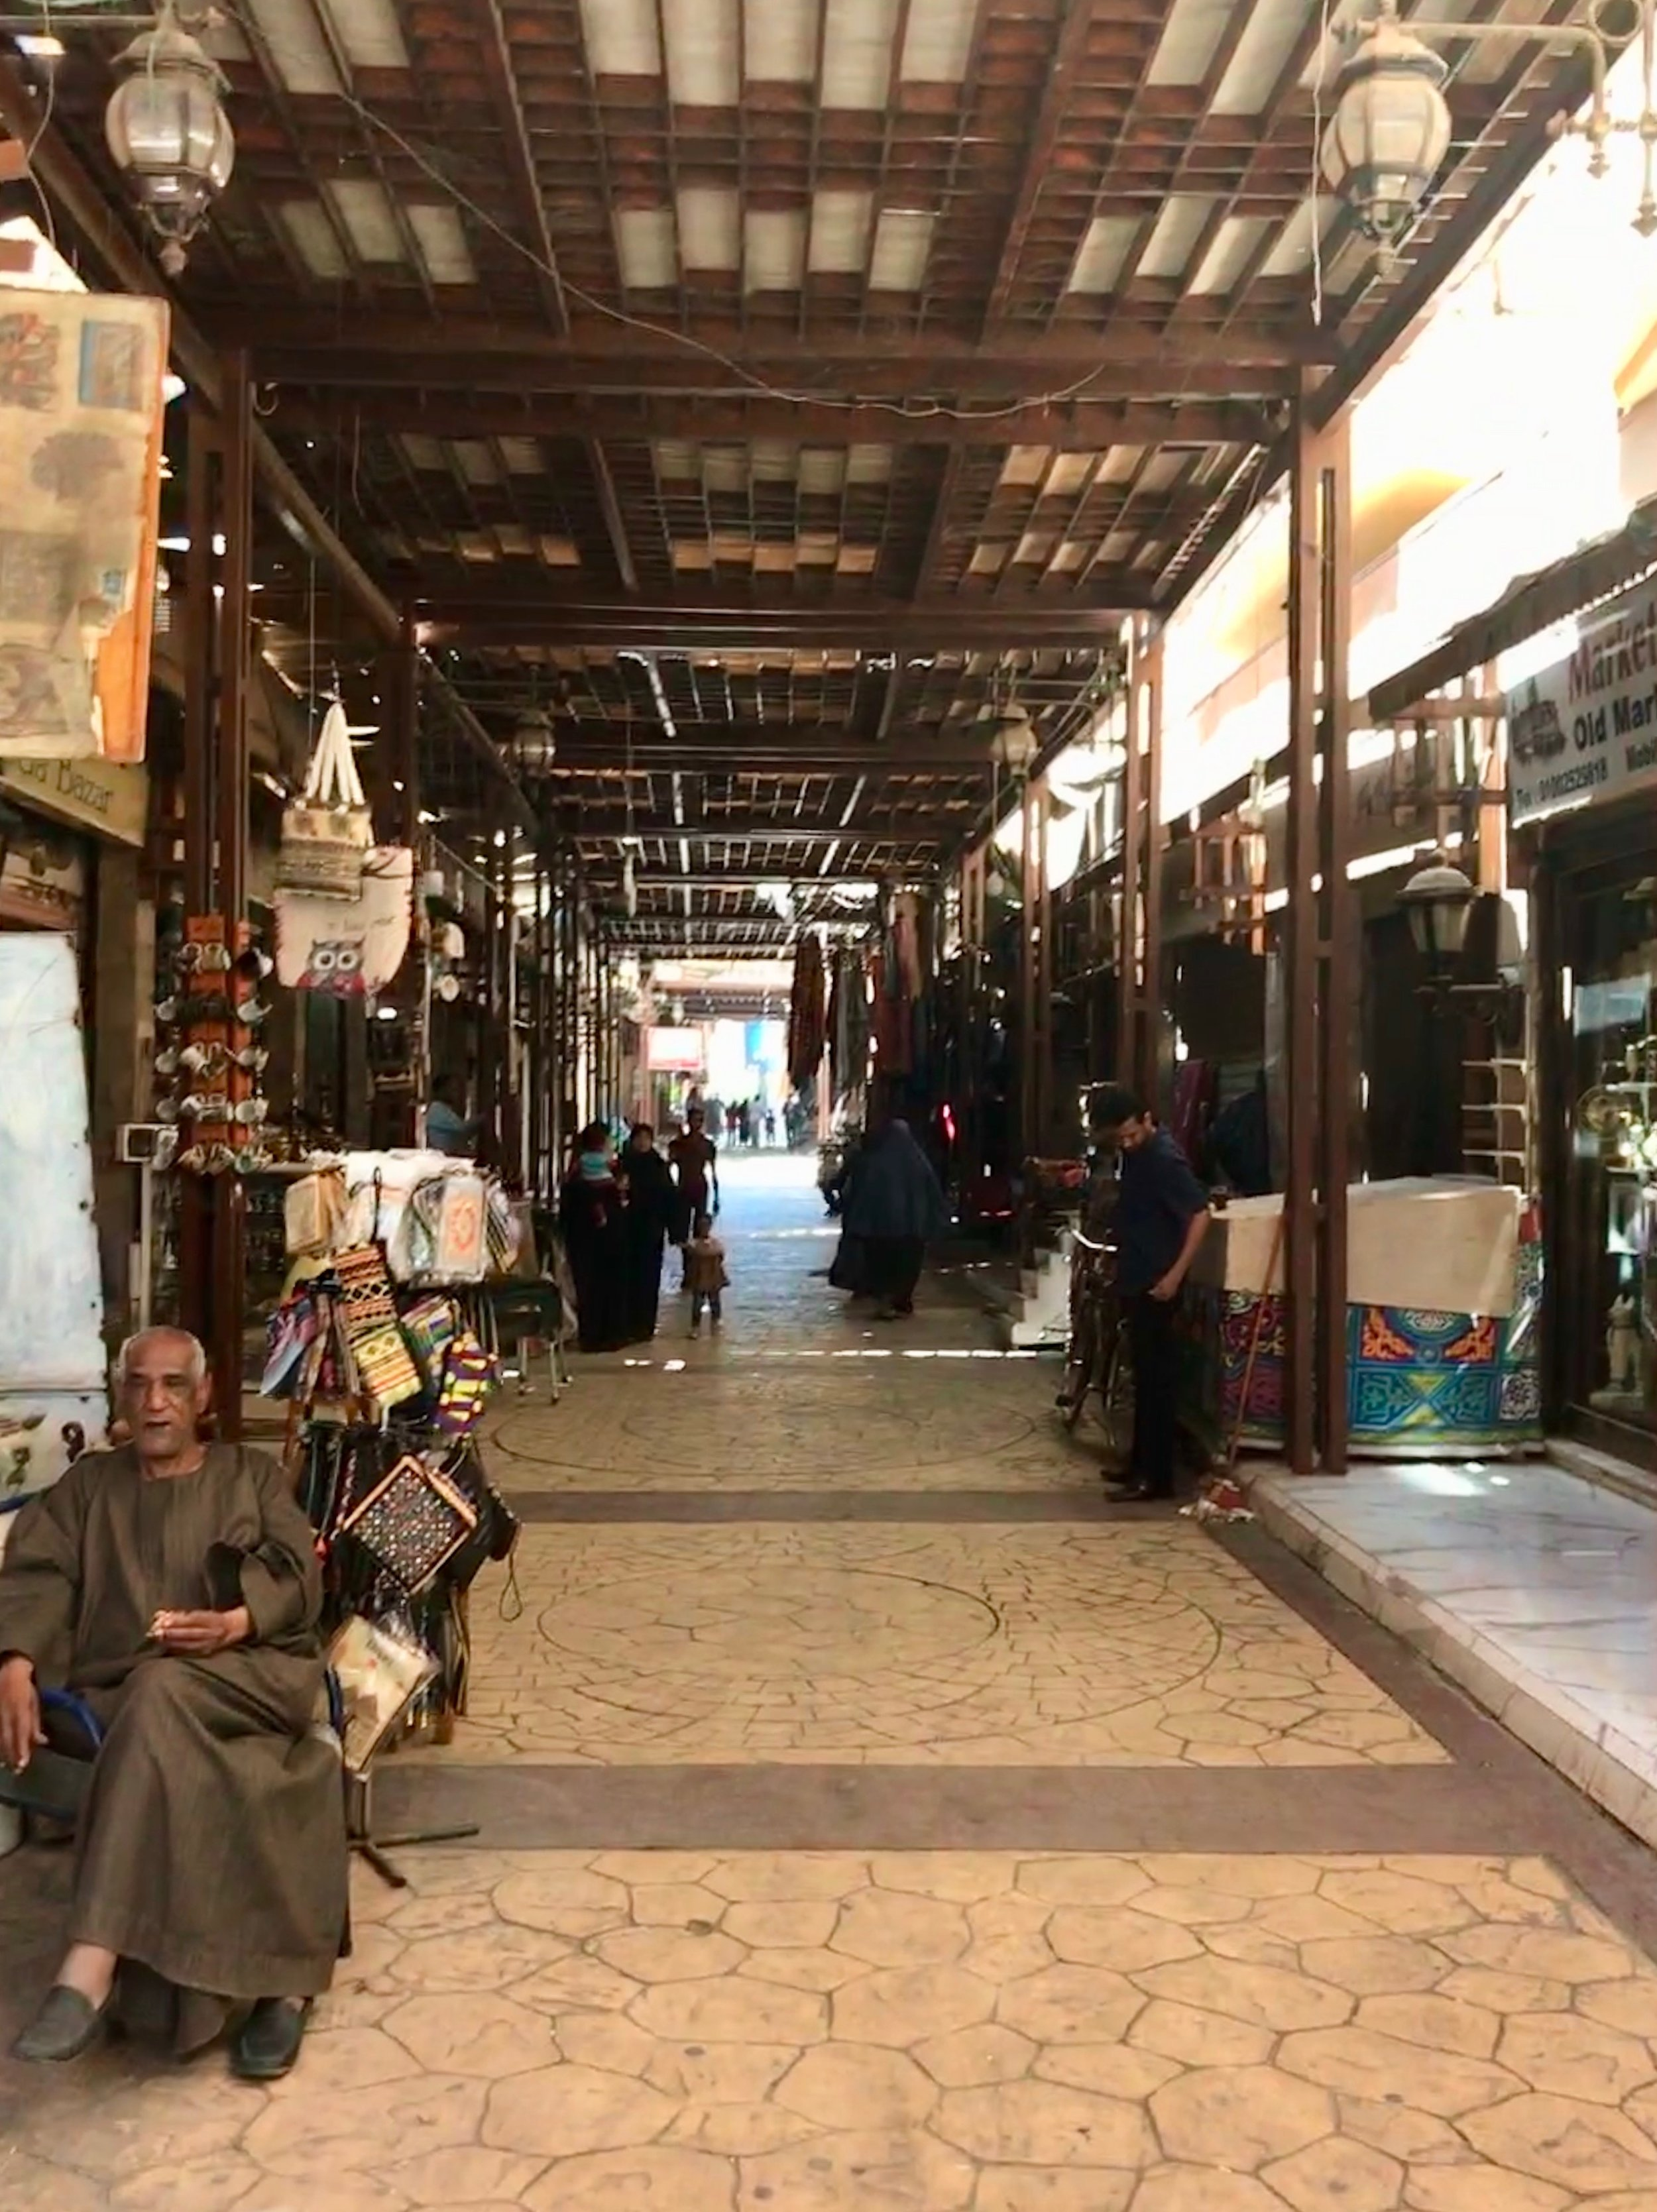 A good portion of stalls are shut on Sunday at the Luxor Souk, since the Coptic Christians are at church